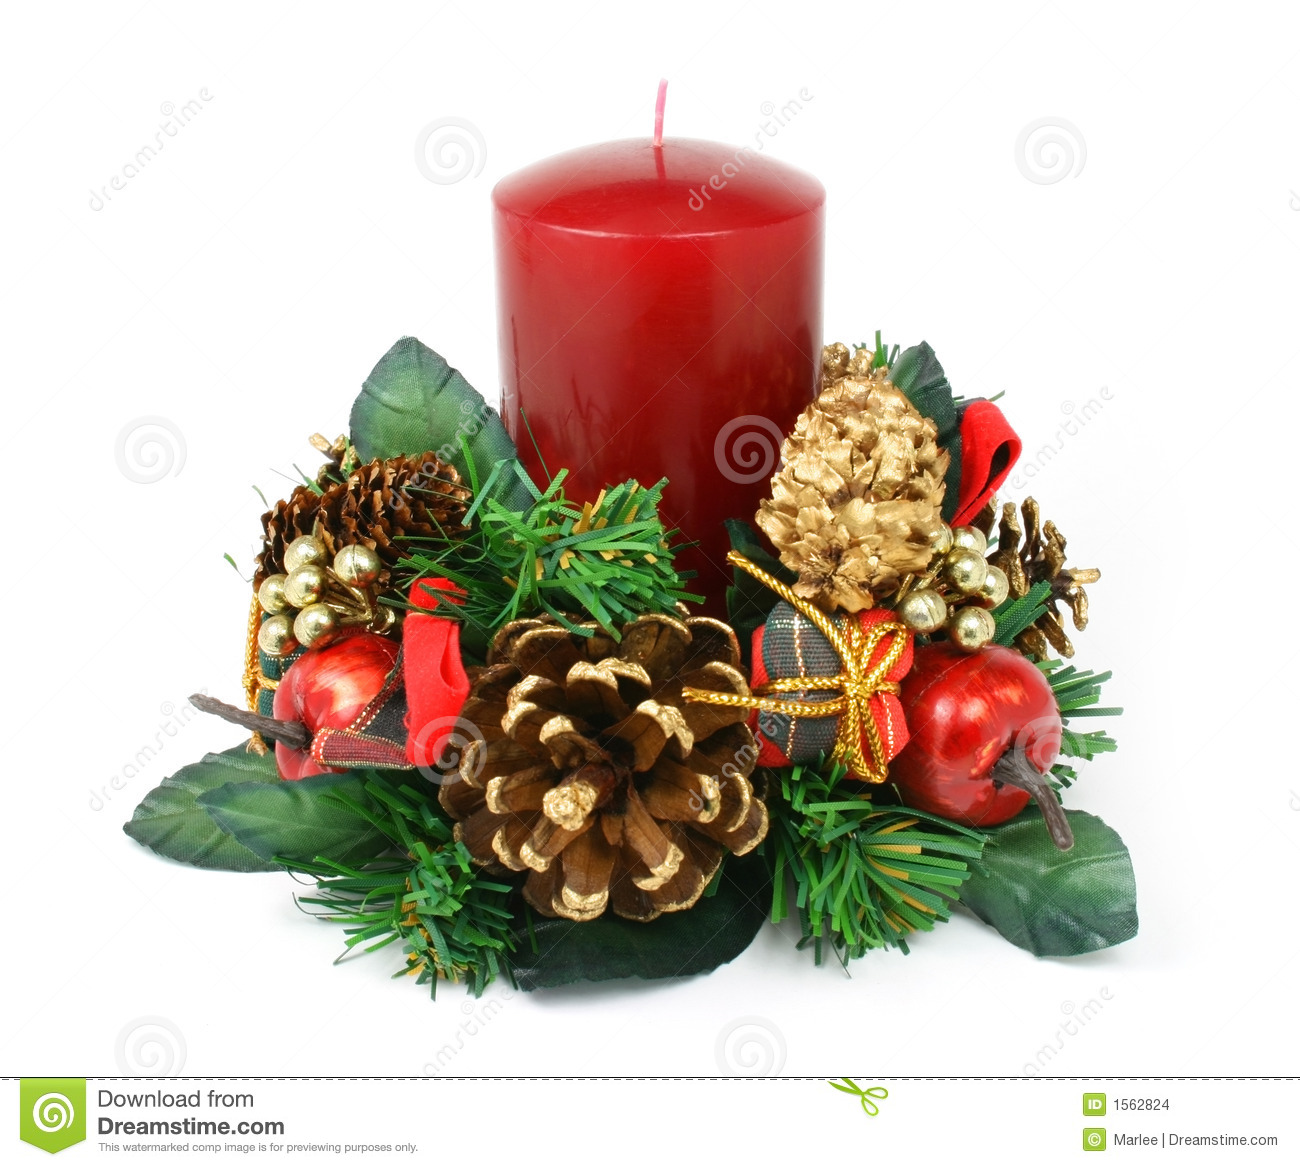 Christmas Candle Ornament On White Background Stock Images - Image ...